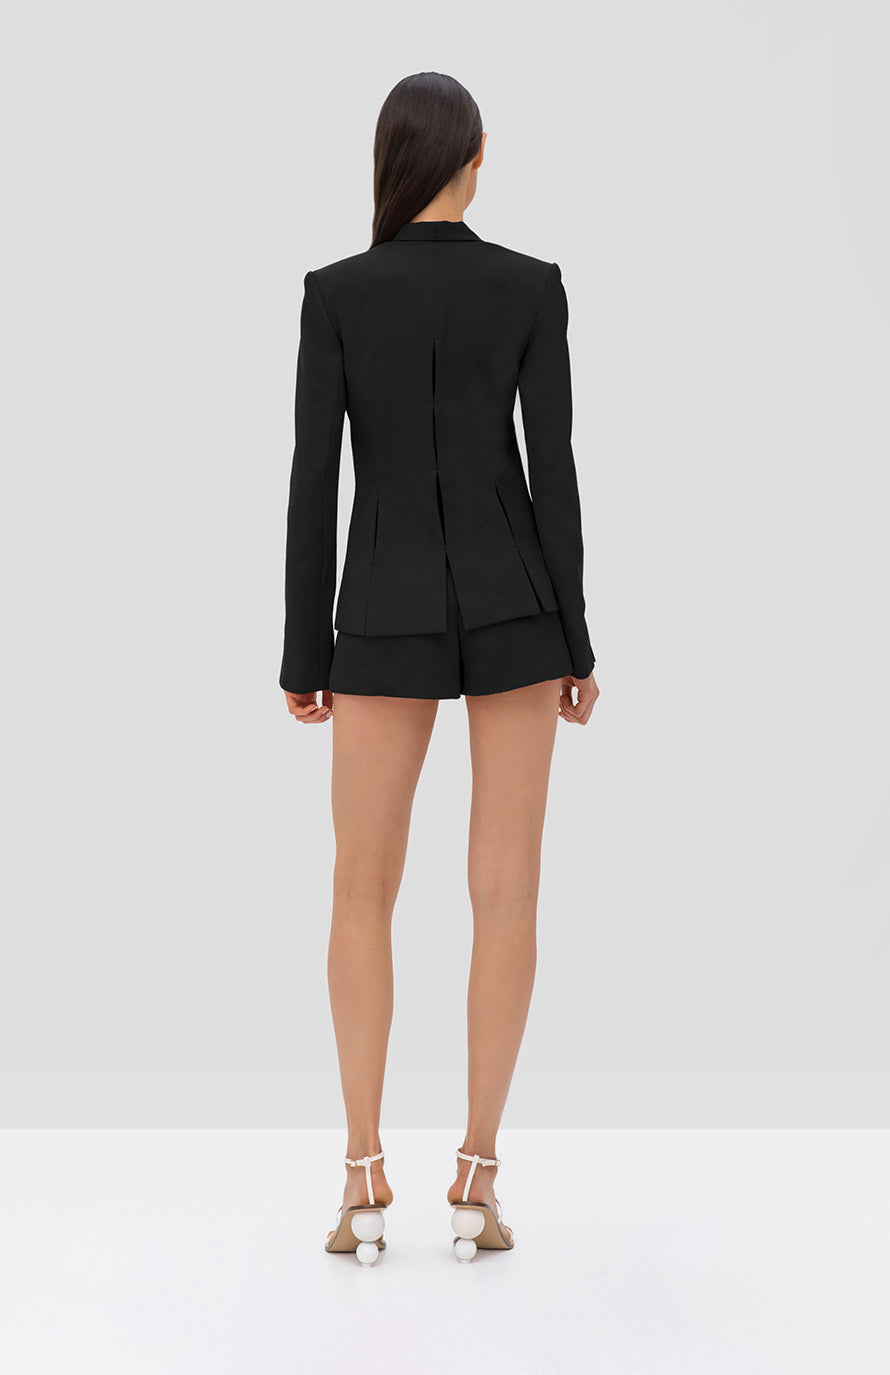 Alexis Mikli Short and Vaska Blazer Black - Rear View